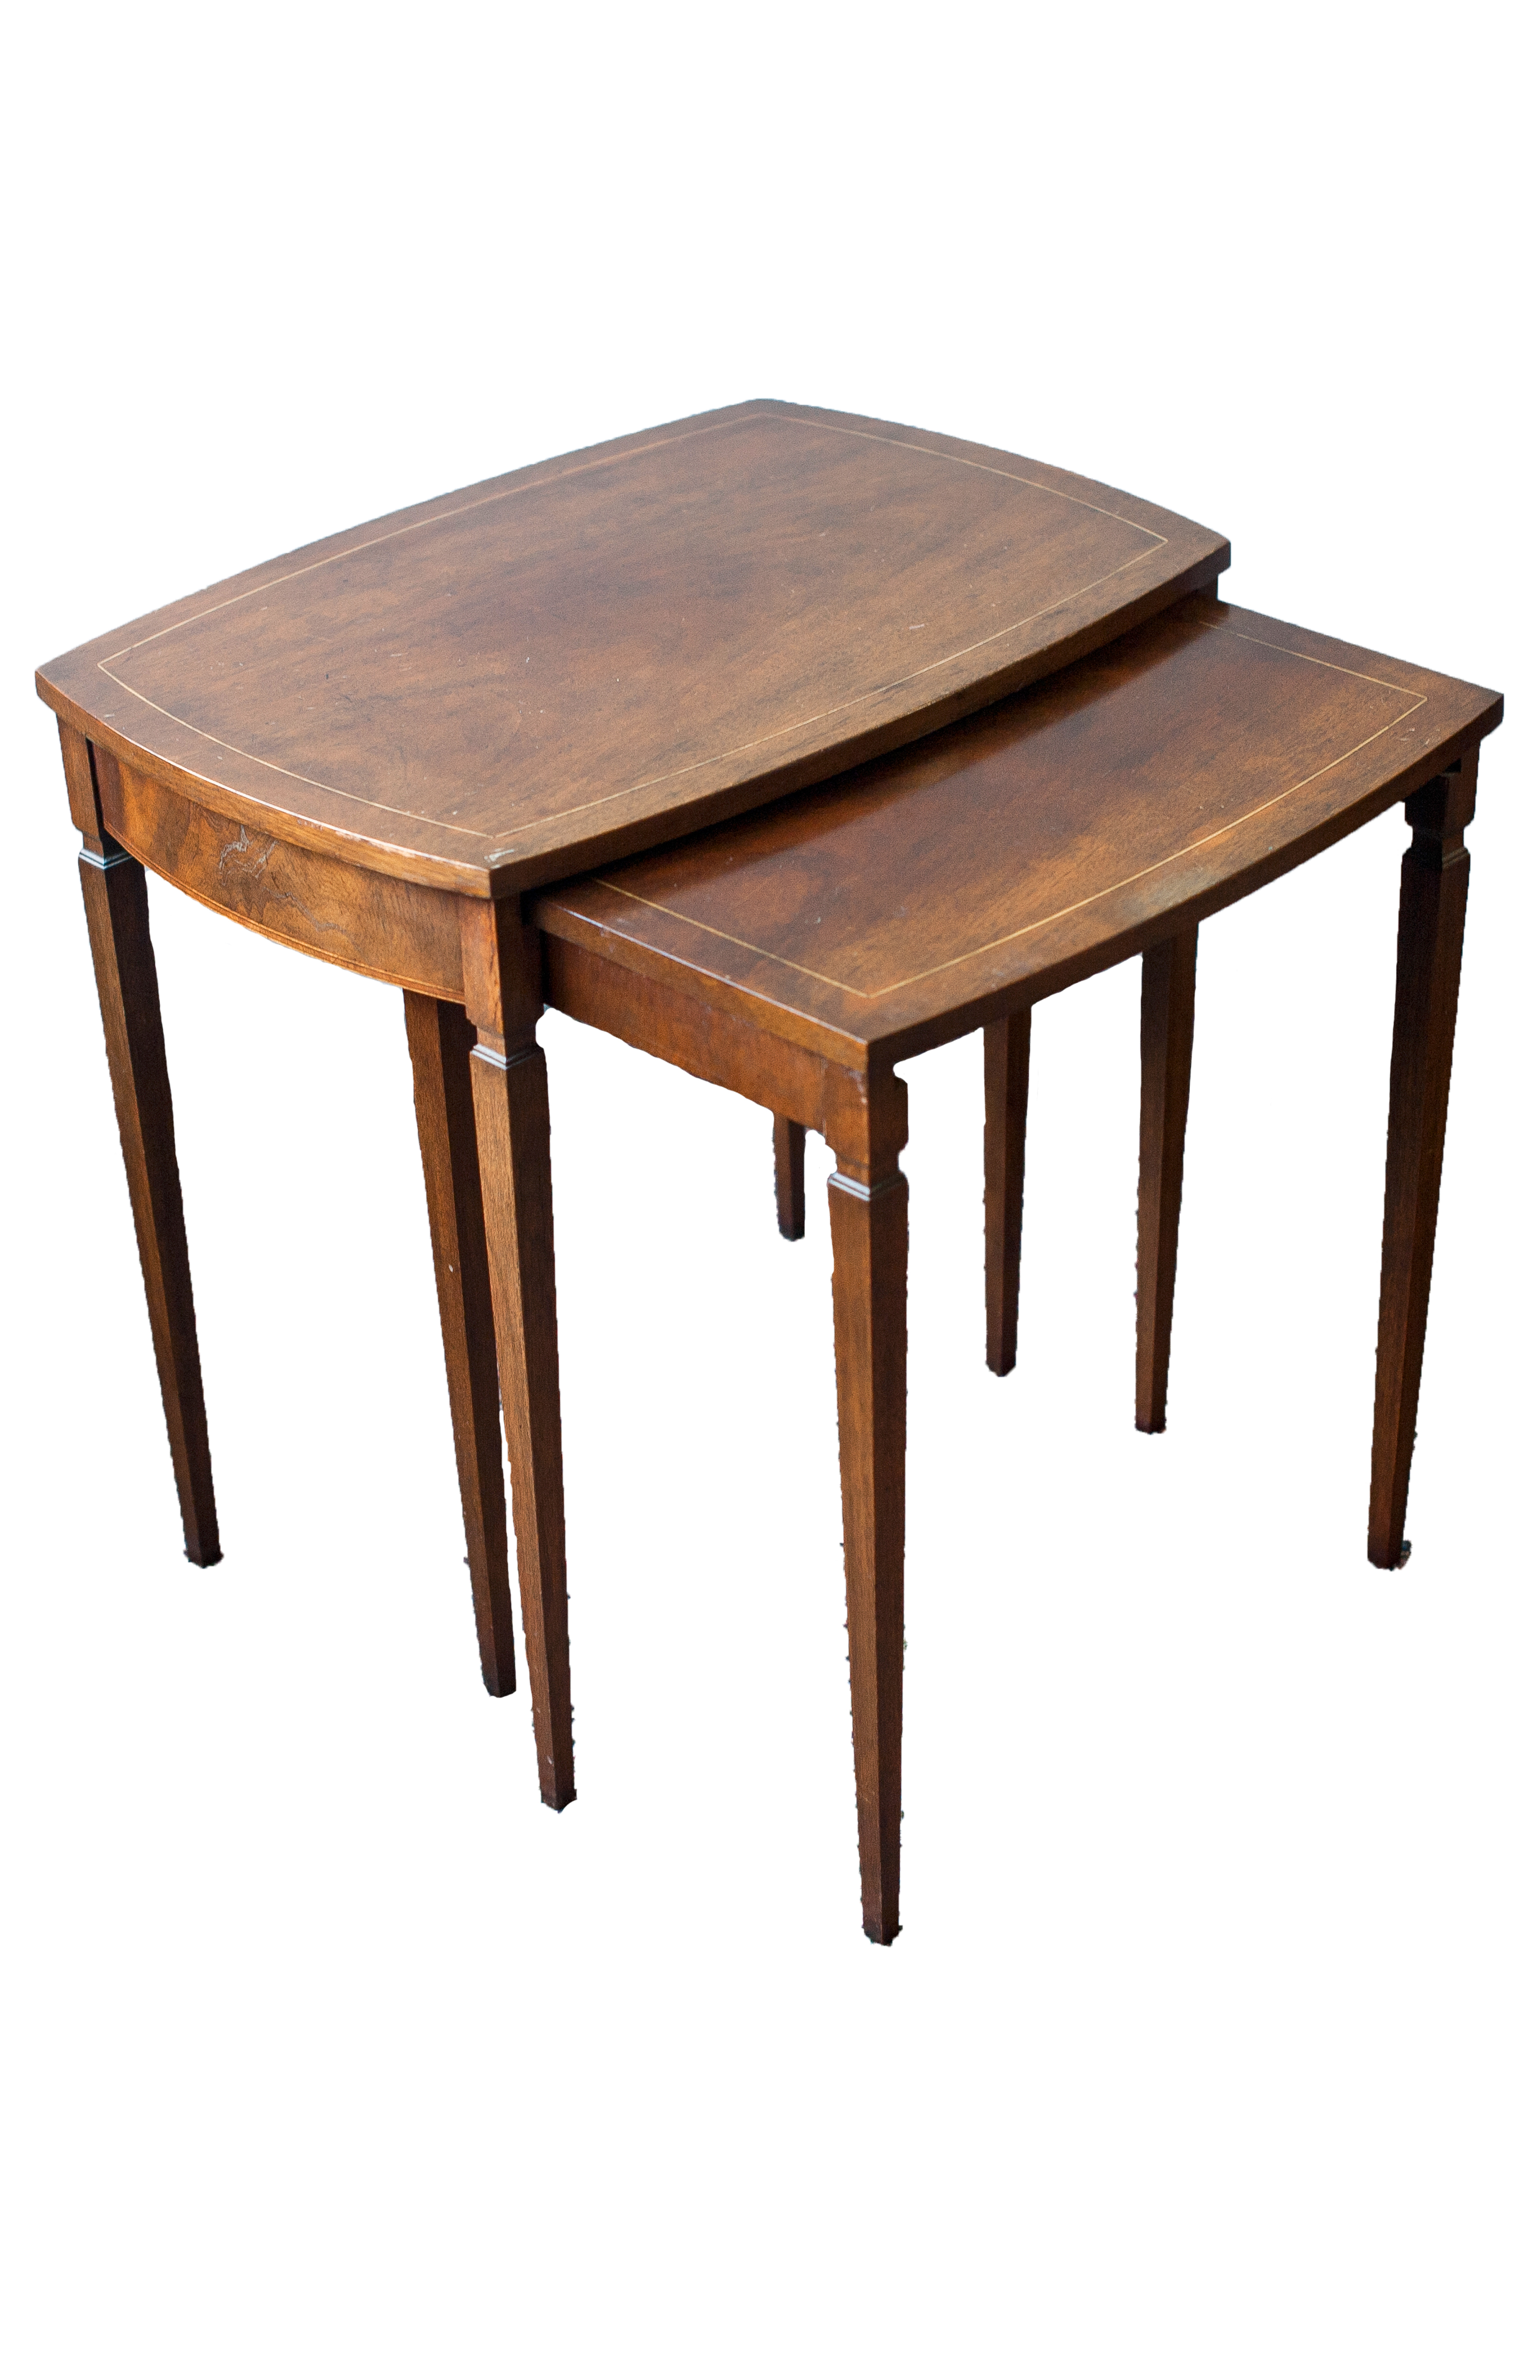 Baker Mid Century Walnut Nesting Tables A Pair Chairish. Full resolution‎  image, nominally Width 3300 Height 5100 pixels, image with #2D170E.